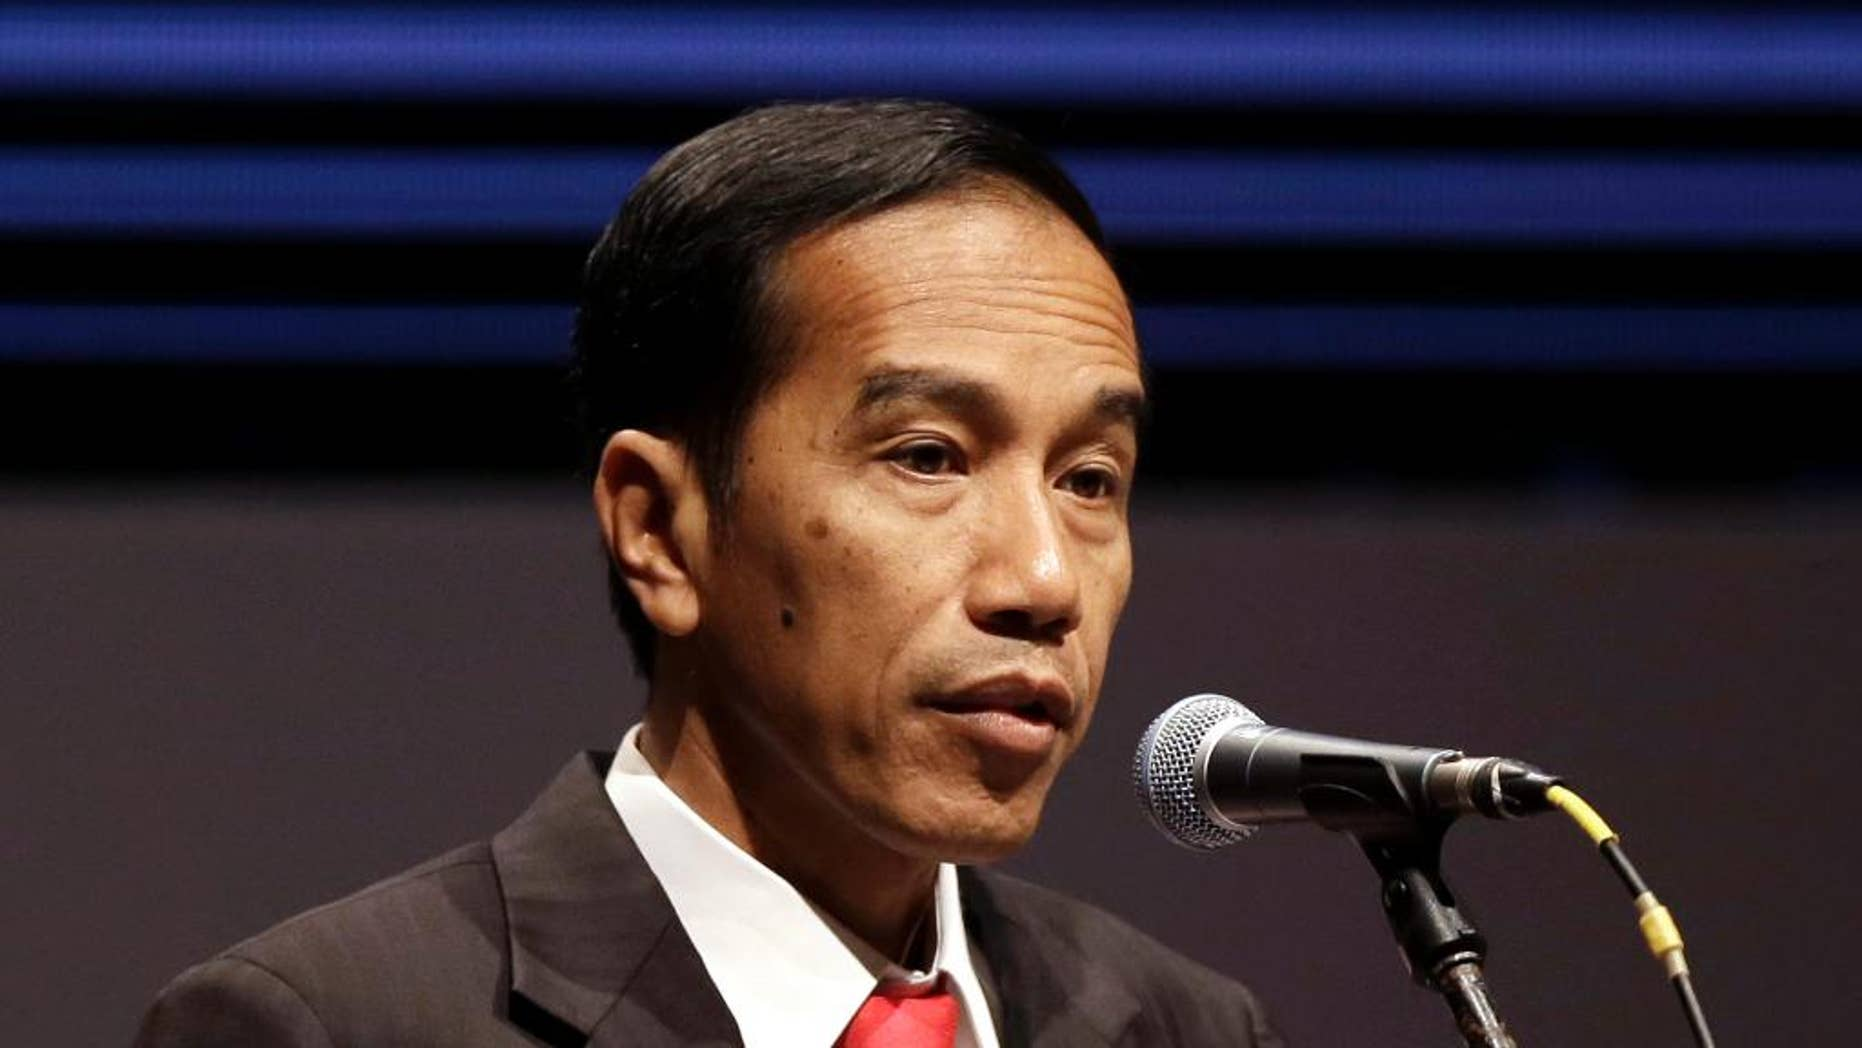 FILE - In this April 21, 2015 file photo, Indonesian President Joko Widodo delivers his remarks during Asian African Business Summit on the sideline of Asian African Conference in Jakarta, Indonesia. Indonesia's president has announced the lifting of a travel ban for foreign journalists to the country's easternmost Papua province and freed five Papuan political prisoners following their appeal for clemency. Widodo announced the lifting of the ban Sunday, May 10, 2015 during his three-day visit to the province. (AP Photo/Dita Alangkara, File)